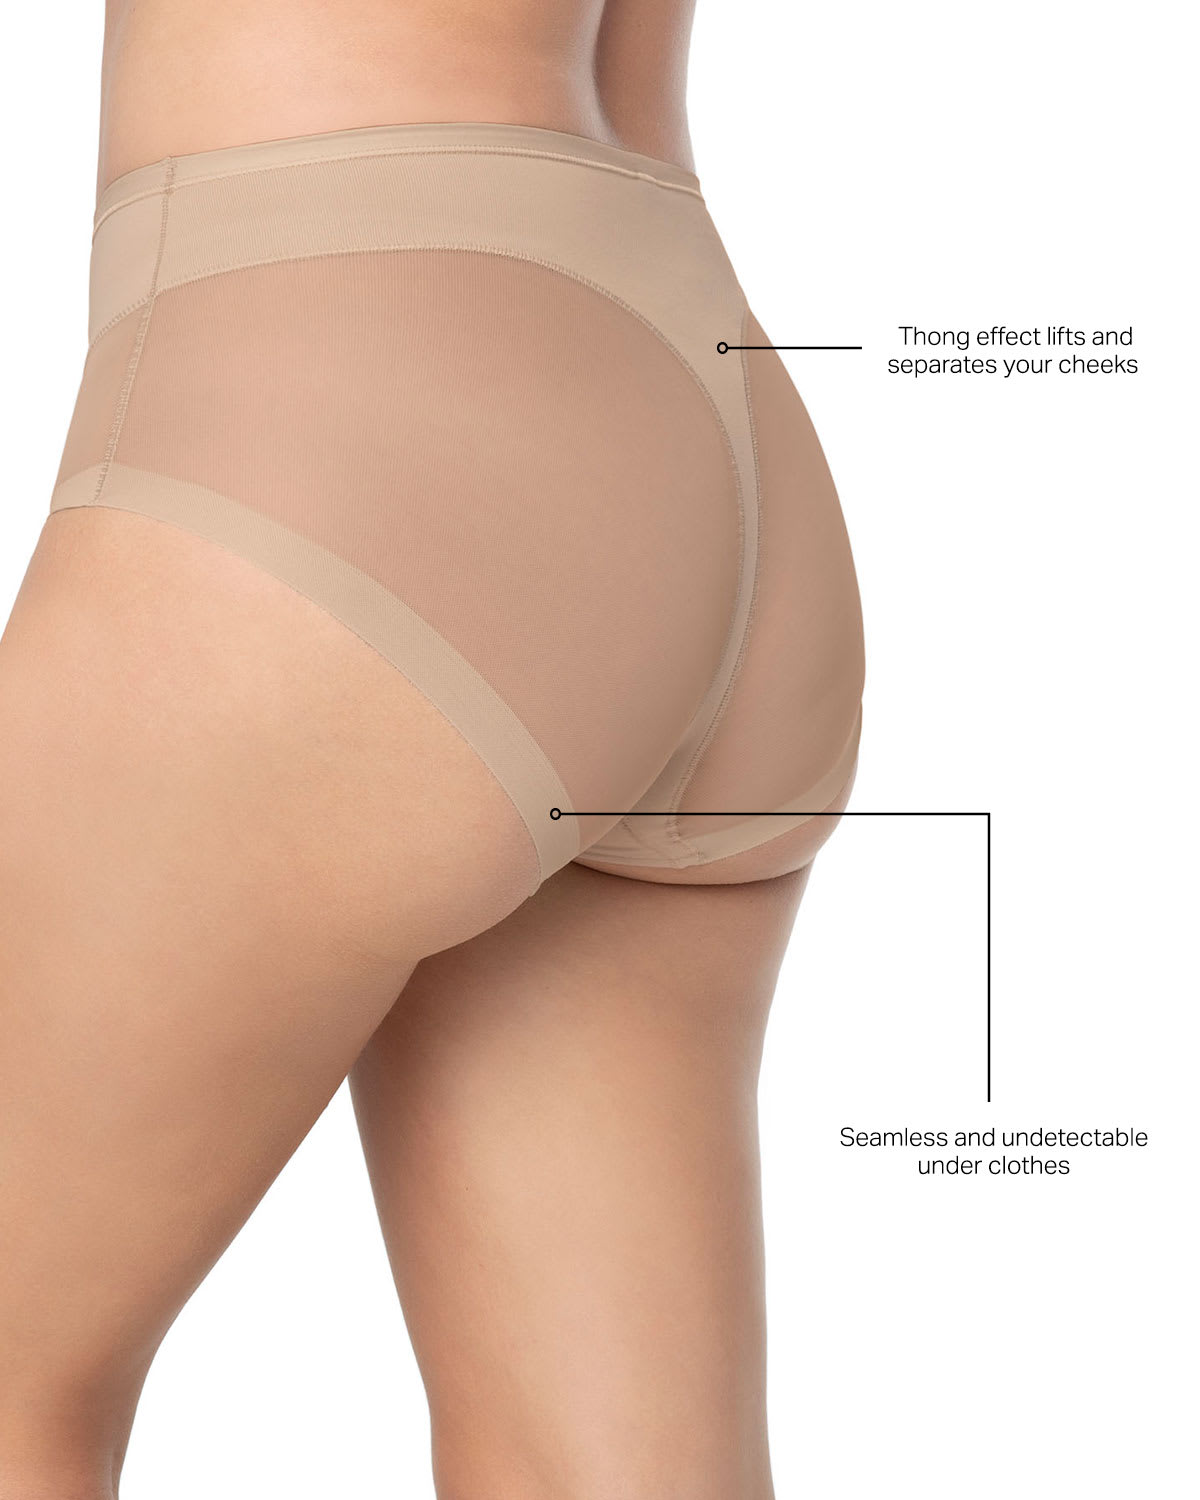 328d7f51aeb Truly Undetectable Comfy Panty Shaper